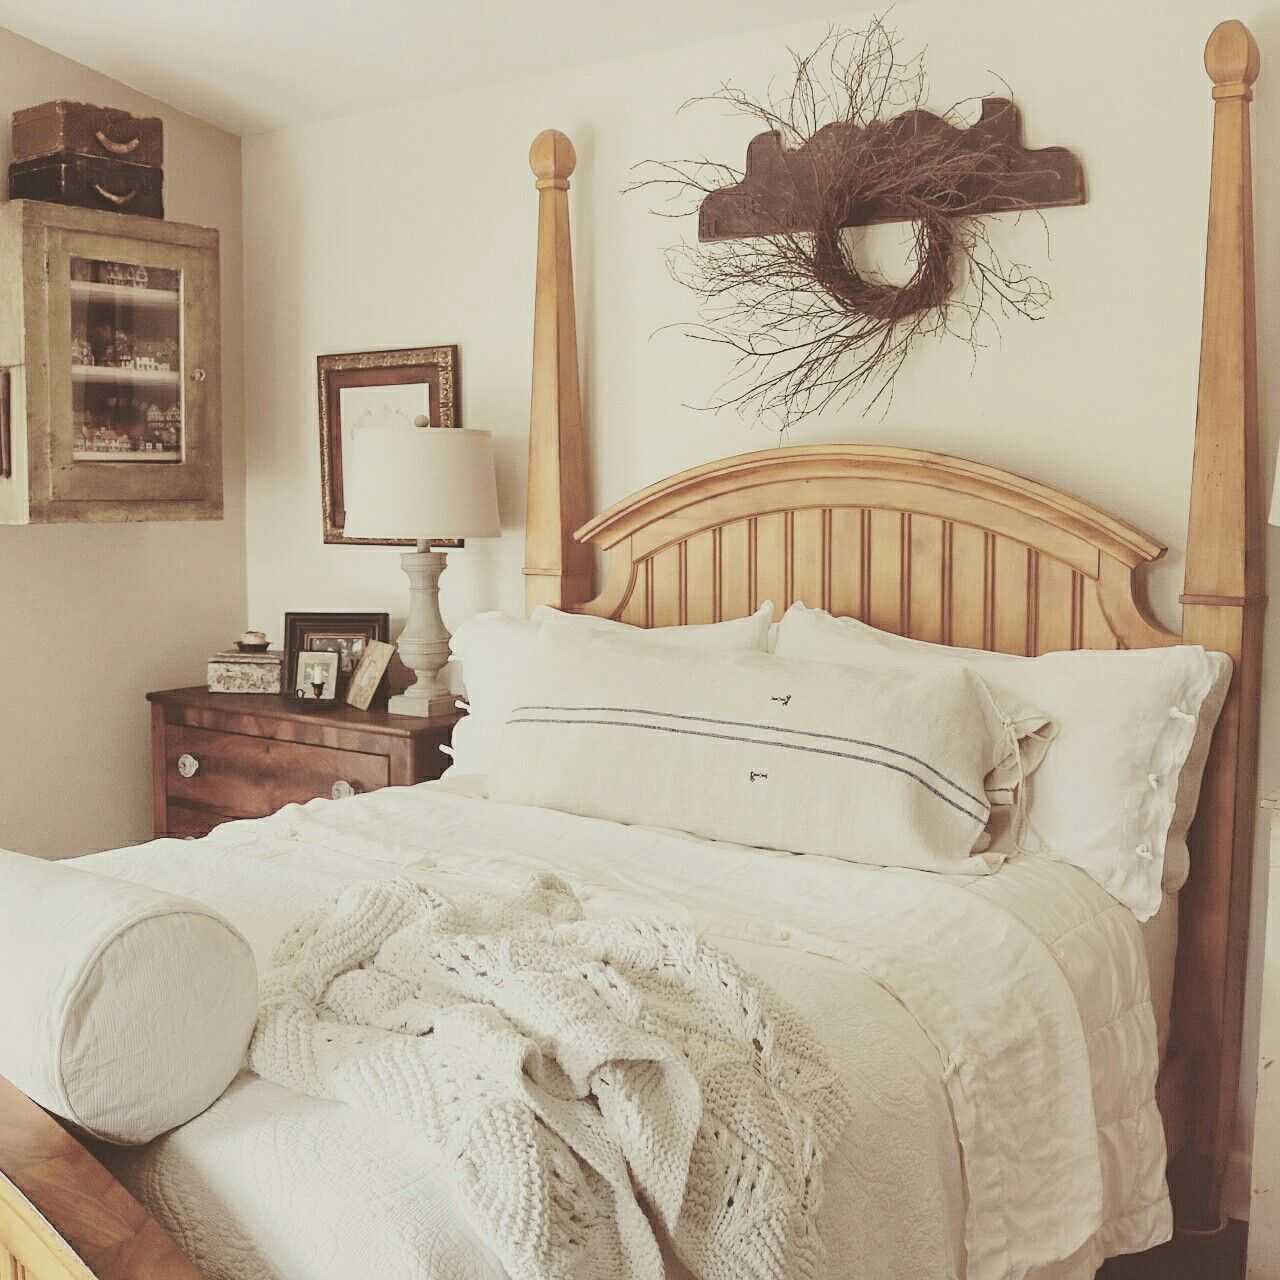 Farmhouse Bedroom At Home on SweetCreek Beautiful bedrooms